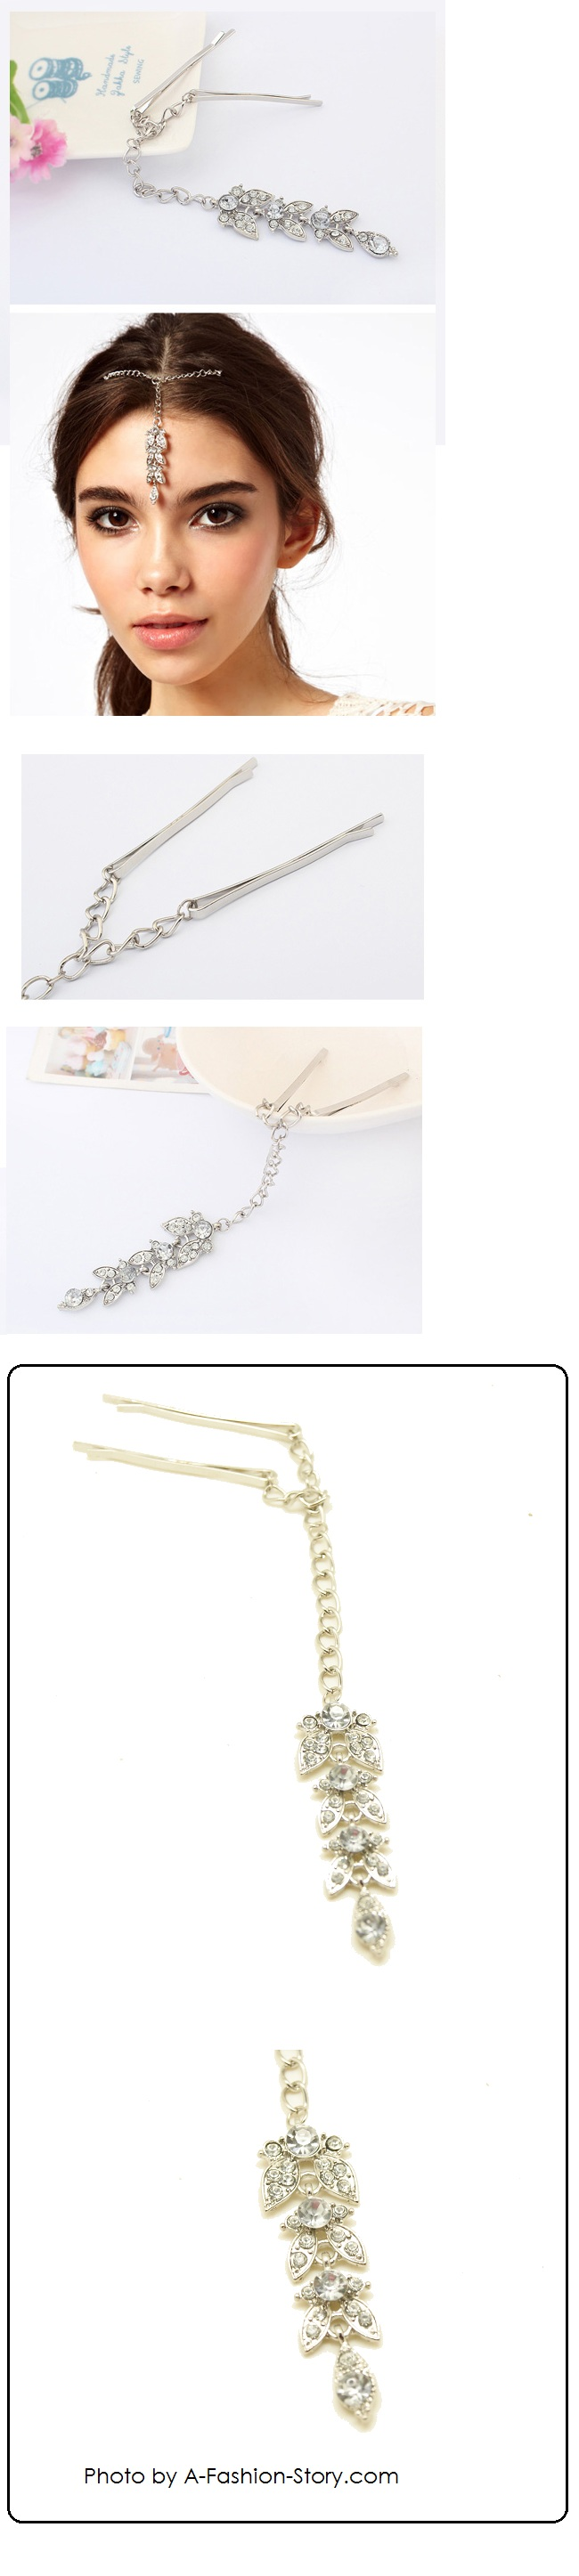 P99630 Flower silver colour dangling charm hairpin